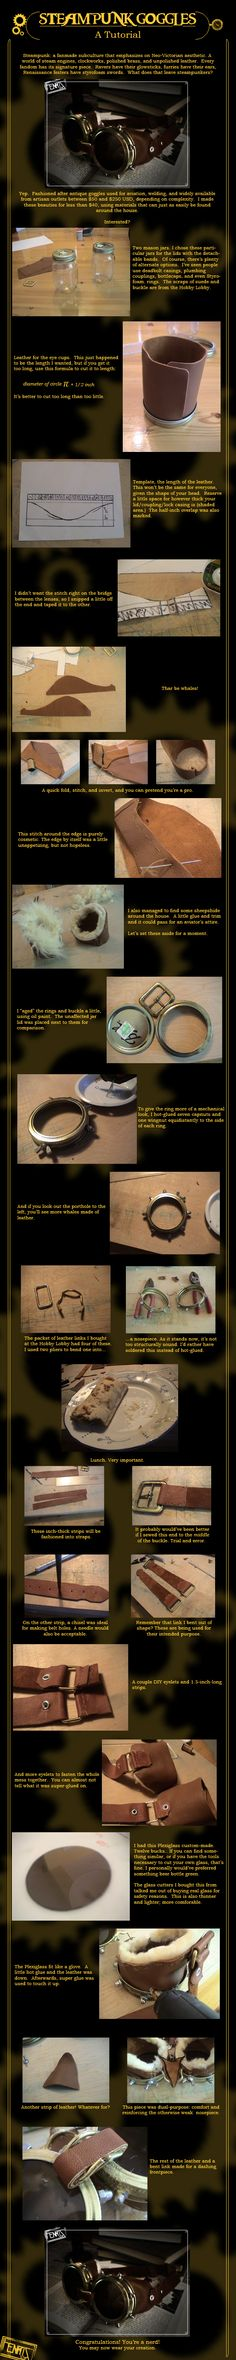 A tutorial on how to create your own steampunk goggles.